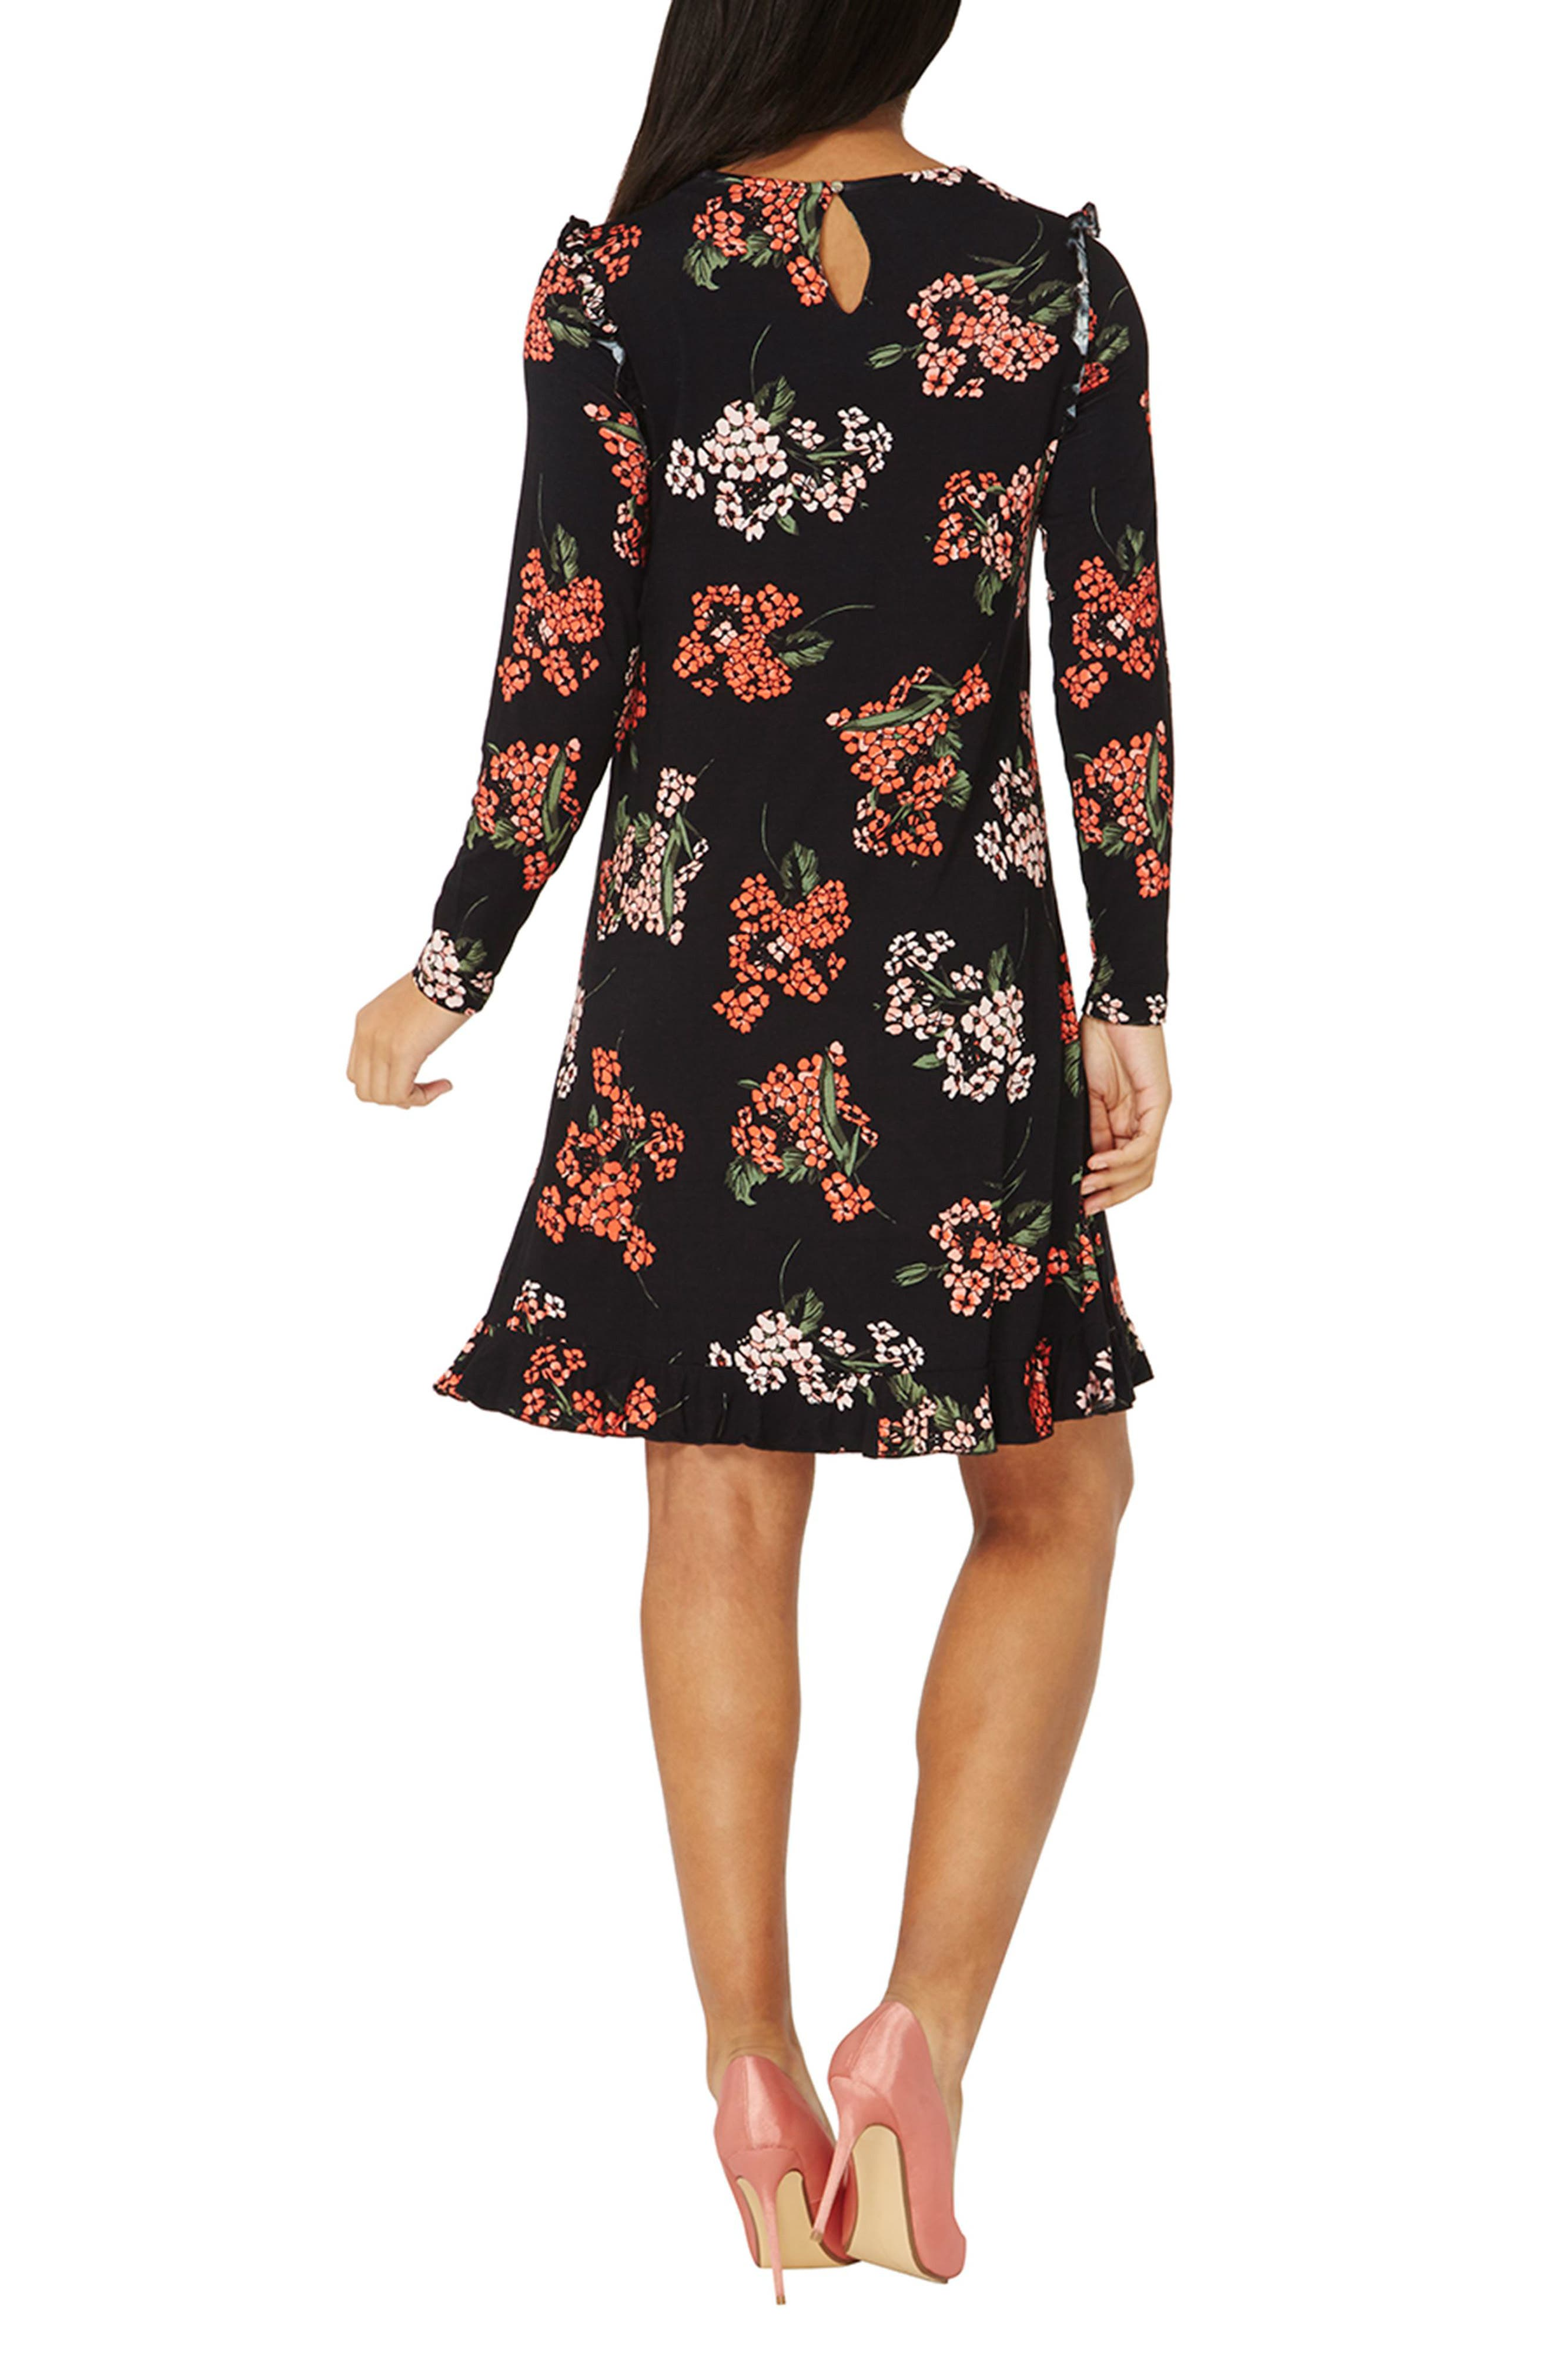 Floral Swing Dress,                             Alternate thumbnail 2, color,                             001